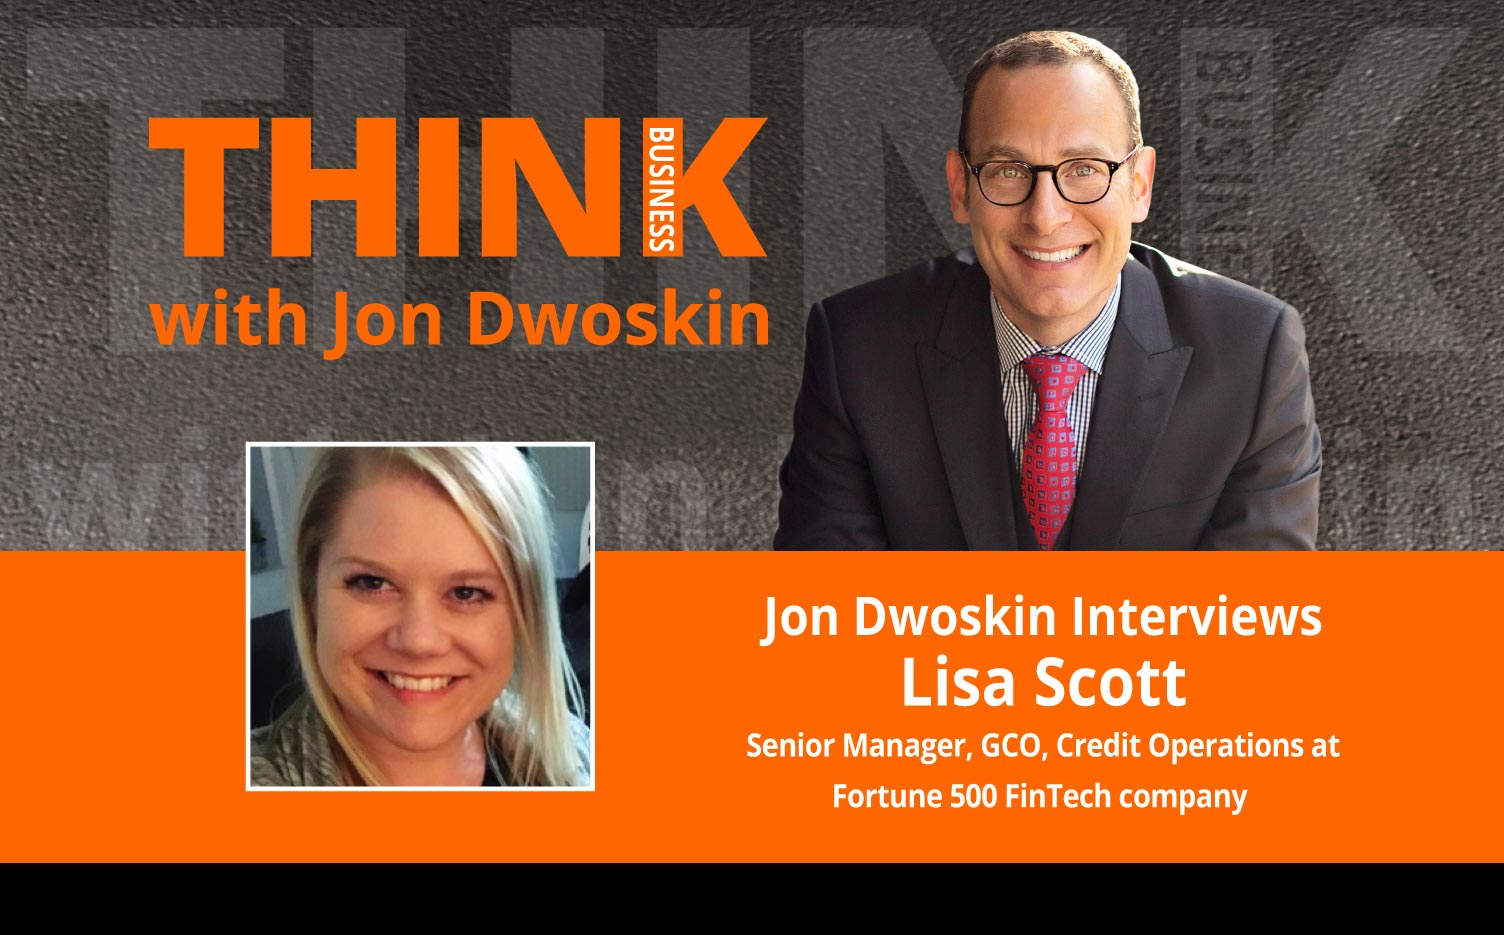 THINK Business Podcast: Jon Dwoskin Interviews Lisa Scott, Senior Manager, GCO, Credit Operations at Fortune 500 FinTech company